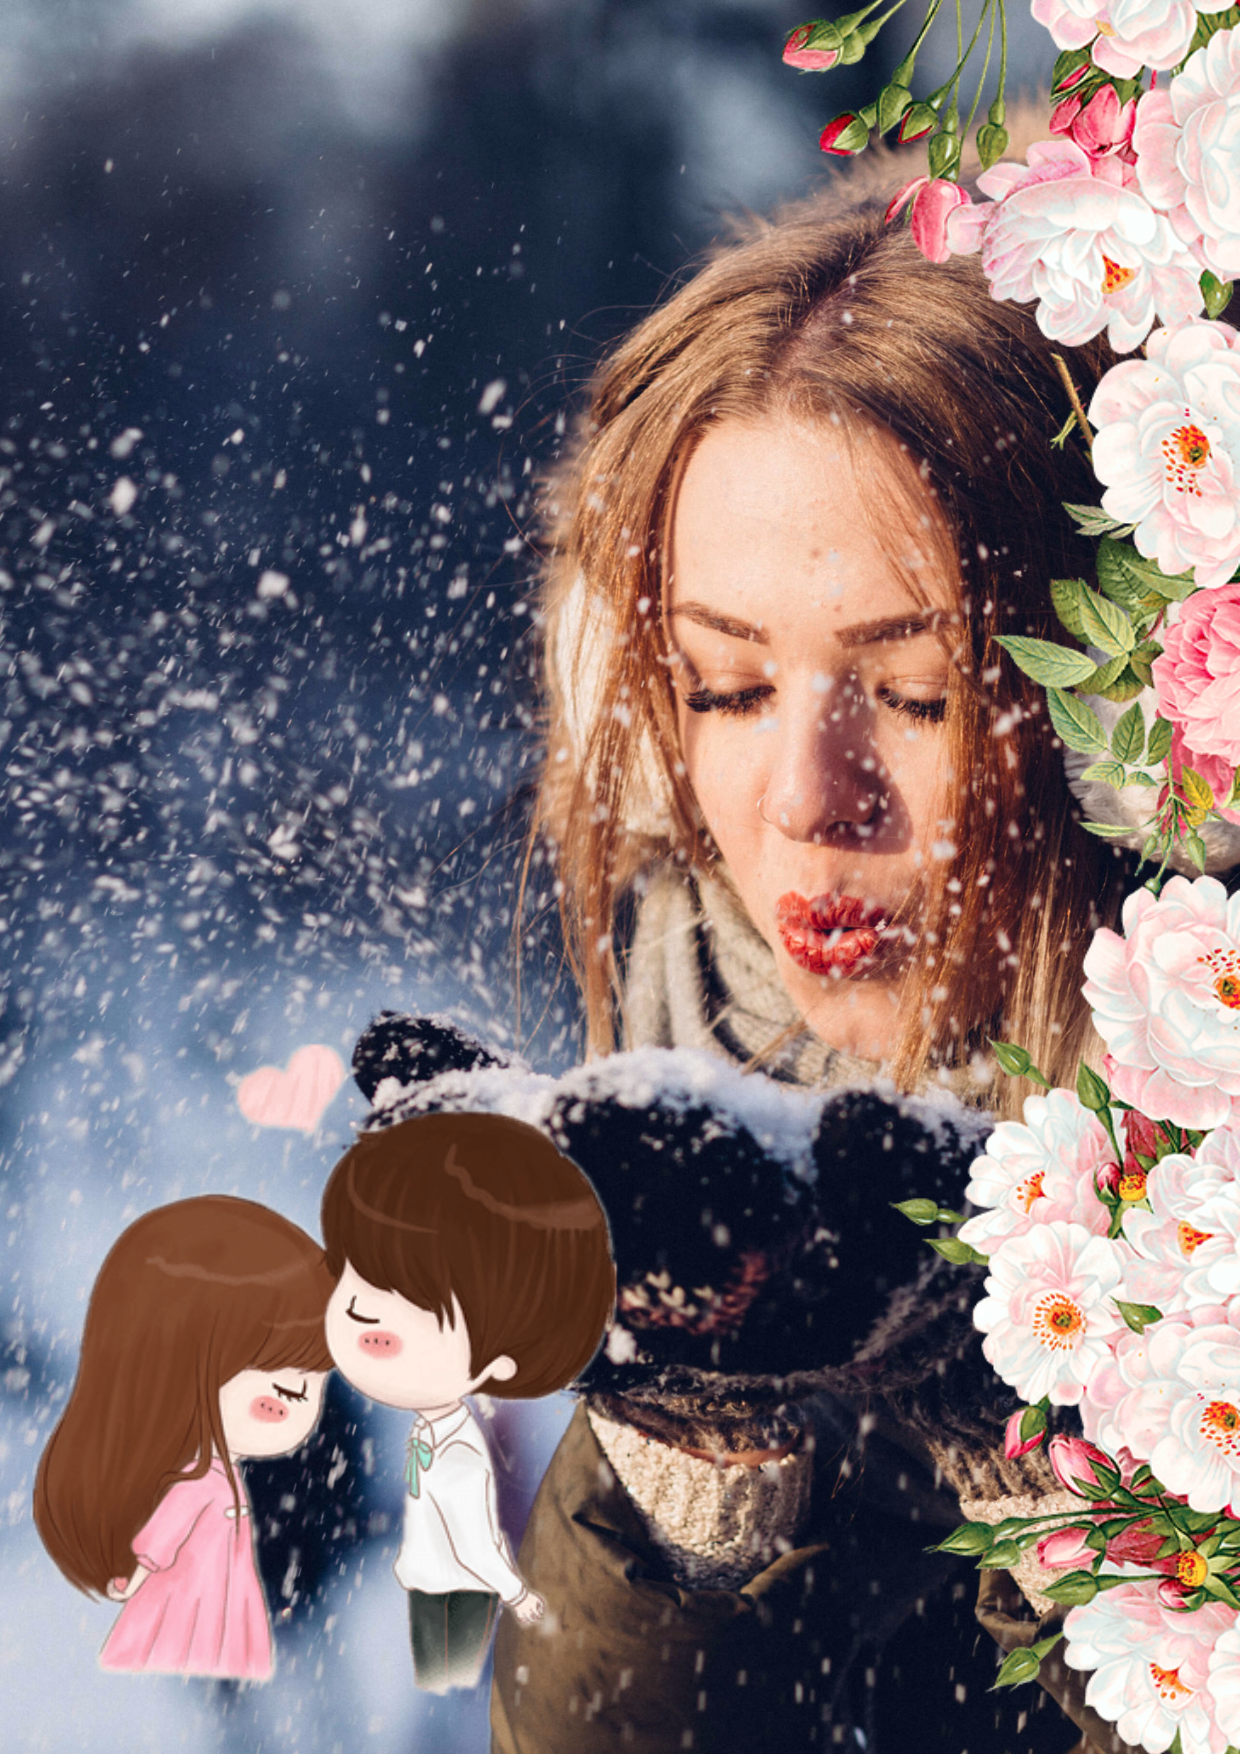 Season,                Romance,                Photomontage,                Interaction,                Flower,                Image,                Avatar,                Love,                White,                Black,                 Free Image